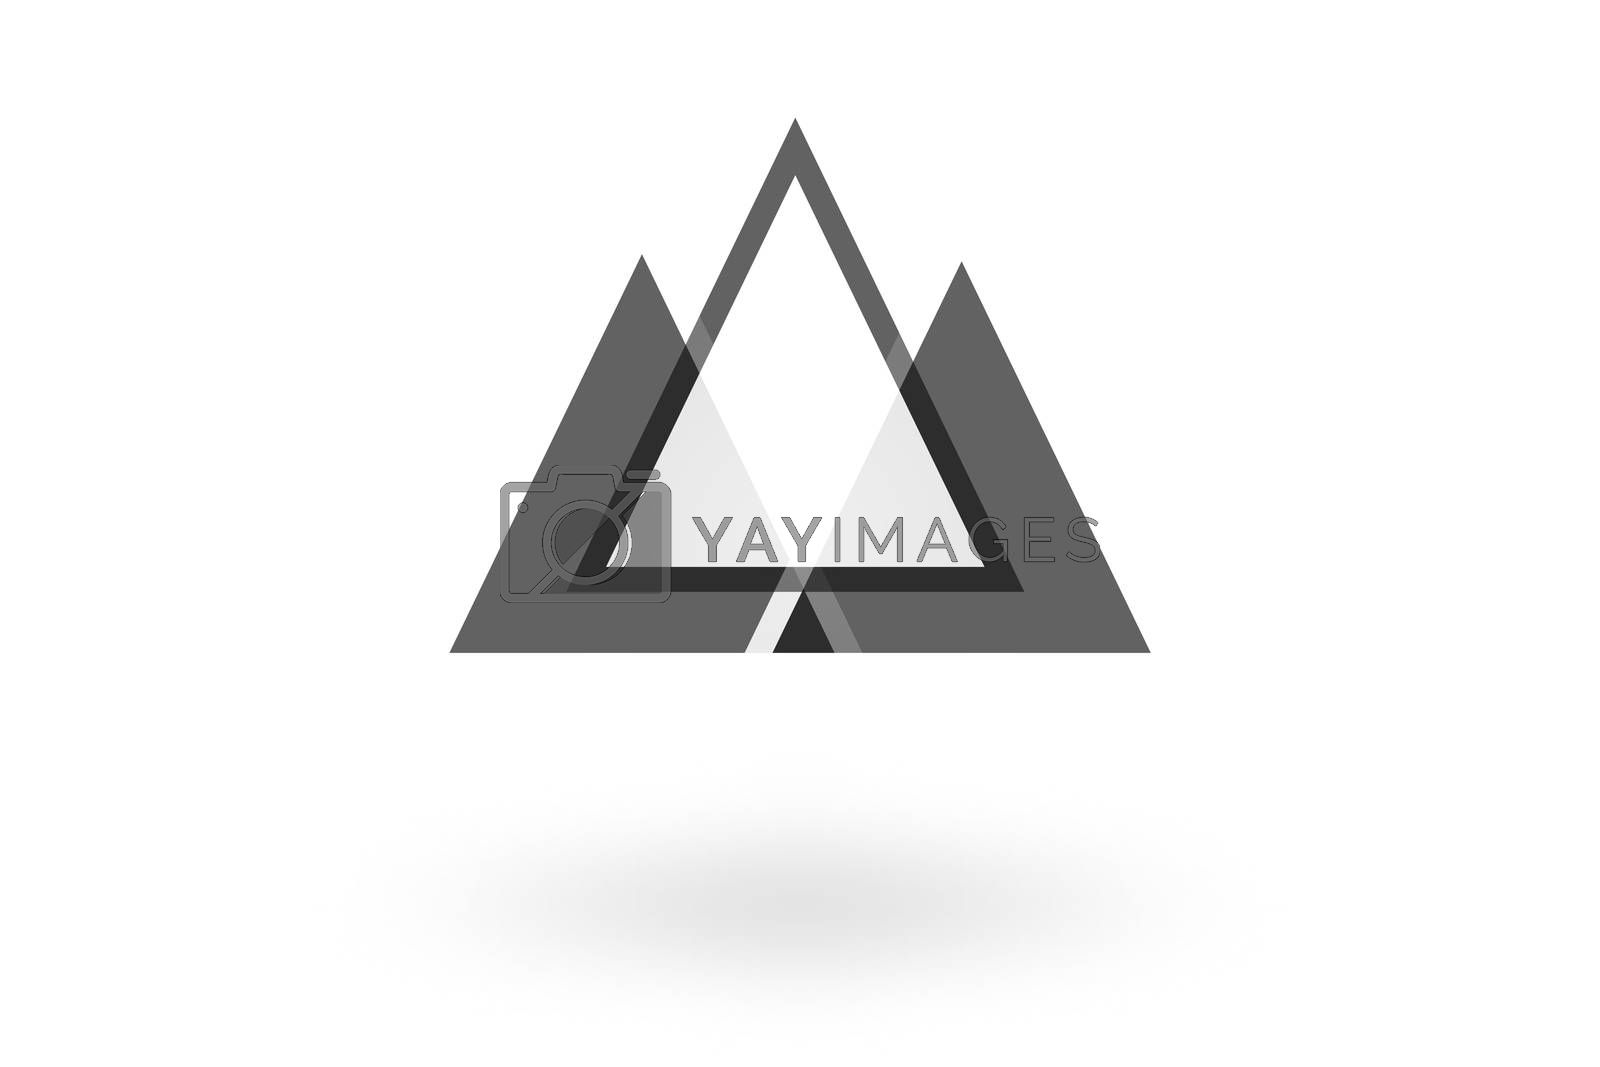 Royalty free image of Abstract geometric pattern, monochrome triangle overlapping logo on white background by mouu007